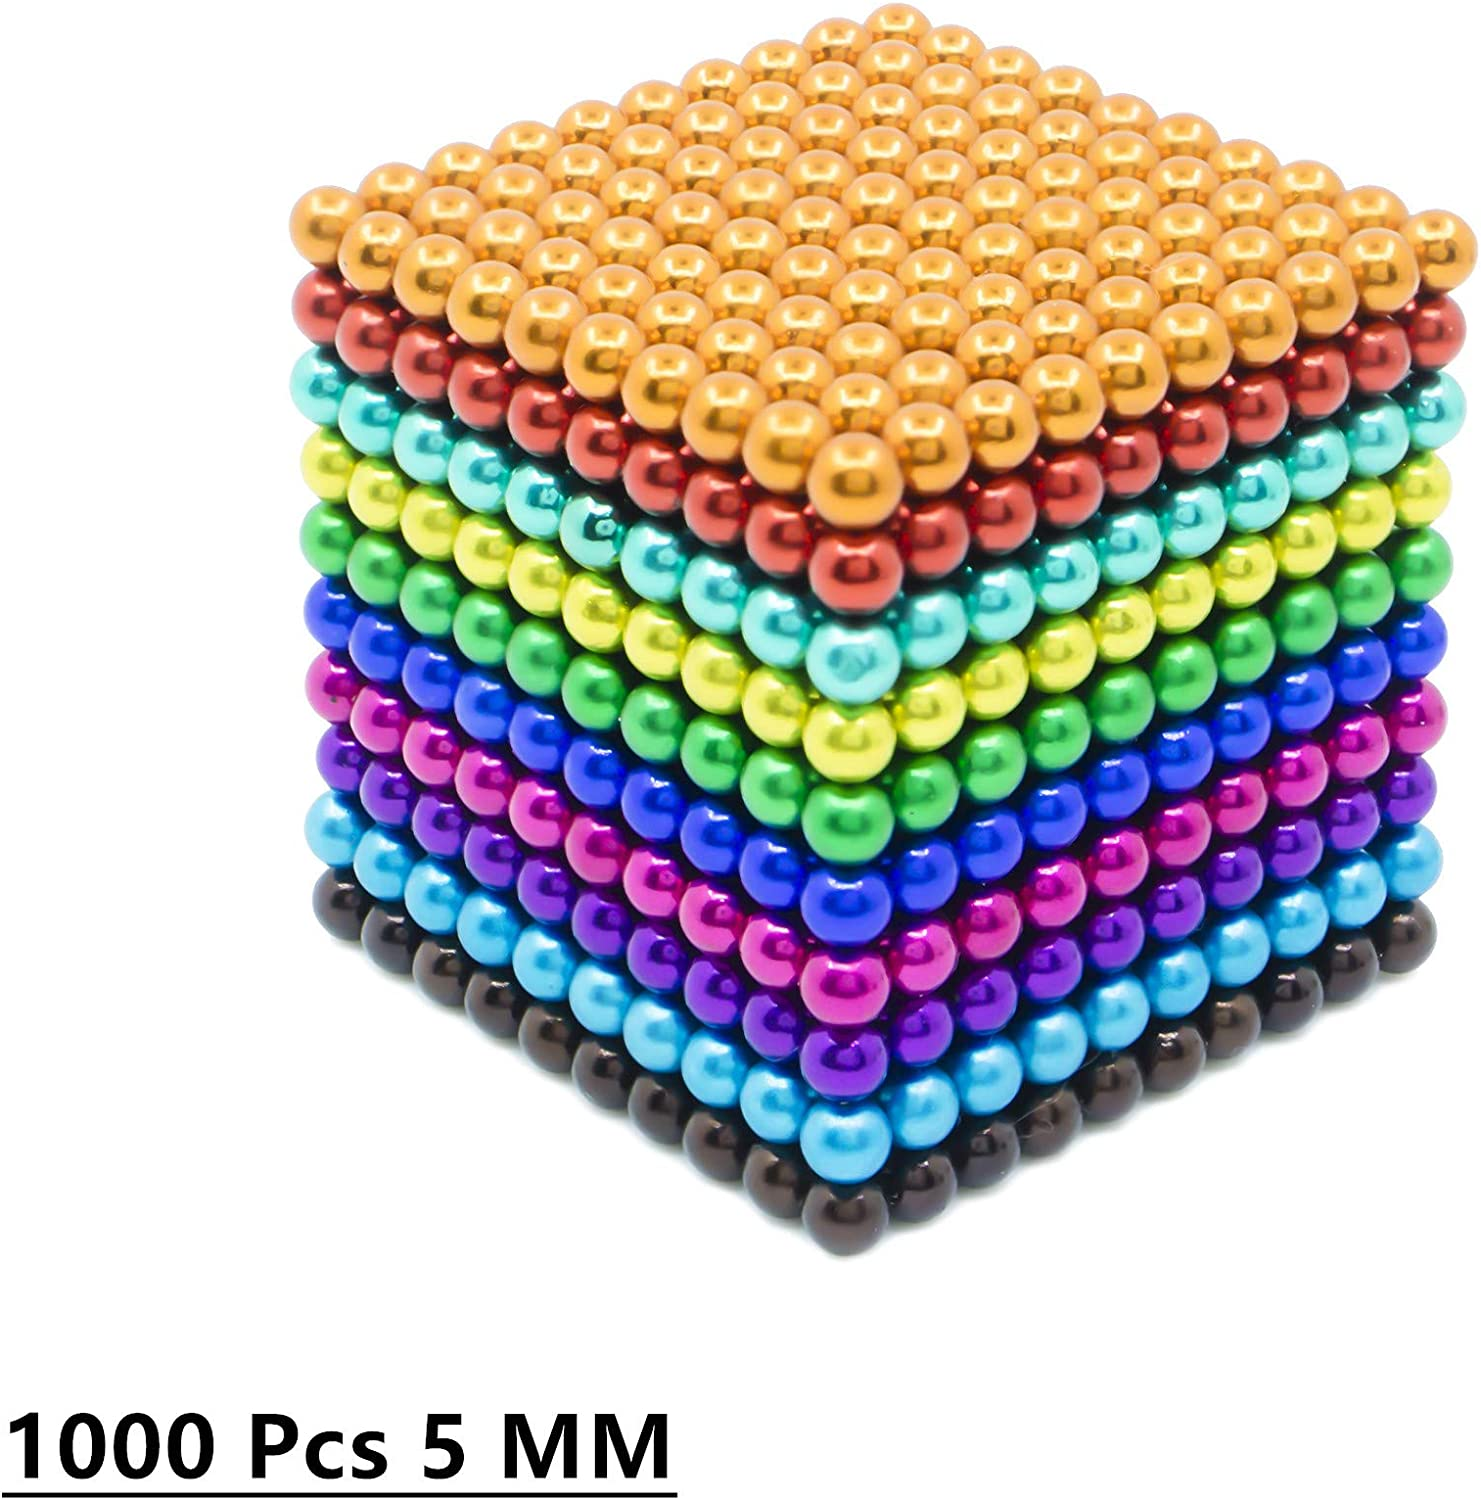 sunsoy 1000 PCS Magnet Balls 5 MM Powerful DIY Office Creative Desktop Craft Decoration Stress Reliever for Adults